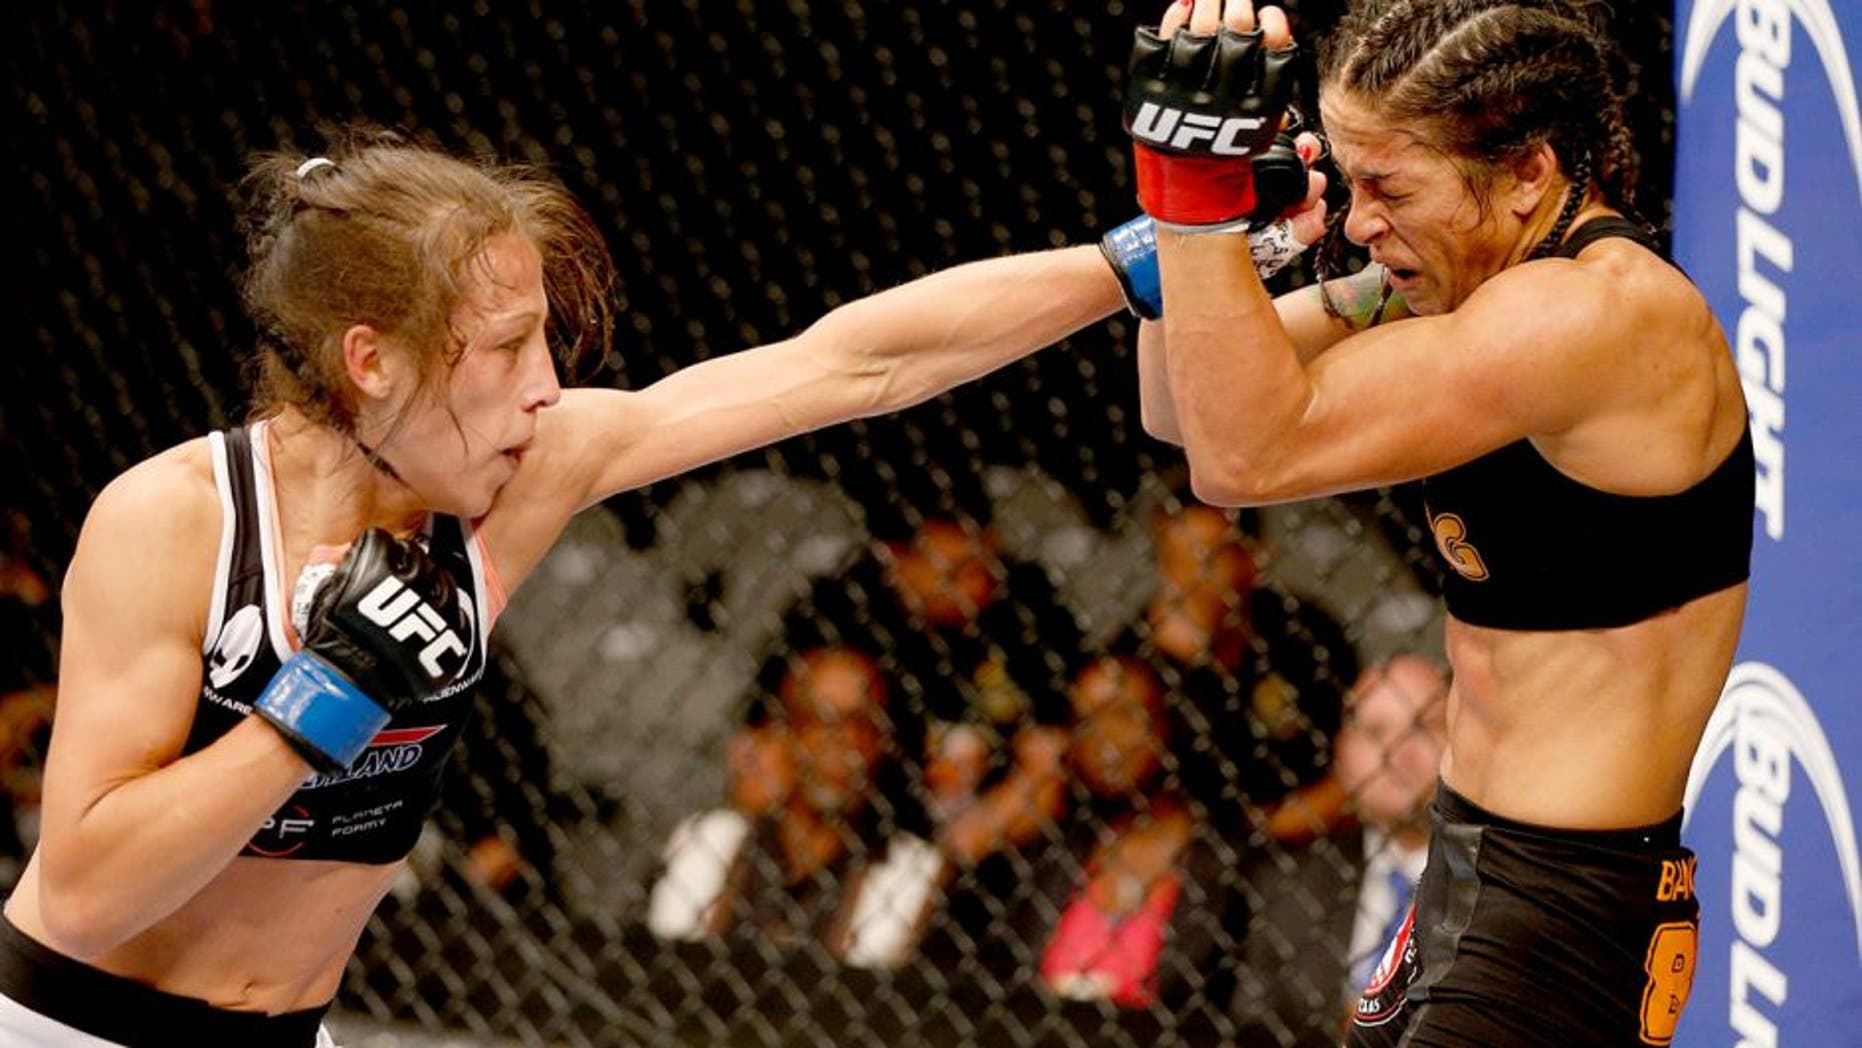 SAN JOSE, CA - JULY 26: (L-R) Joanna Jedrzejczyk punches Julianna Lima in their womens strawweight bout during the UFC Fight Night event at SAP Center on July 26, 2014 in San Jose, California. (Photo by Josh Hedges/Zuffa LLC/Zuffa LLC via Getty Images)